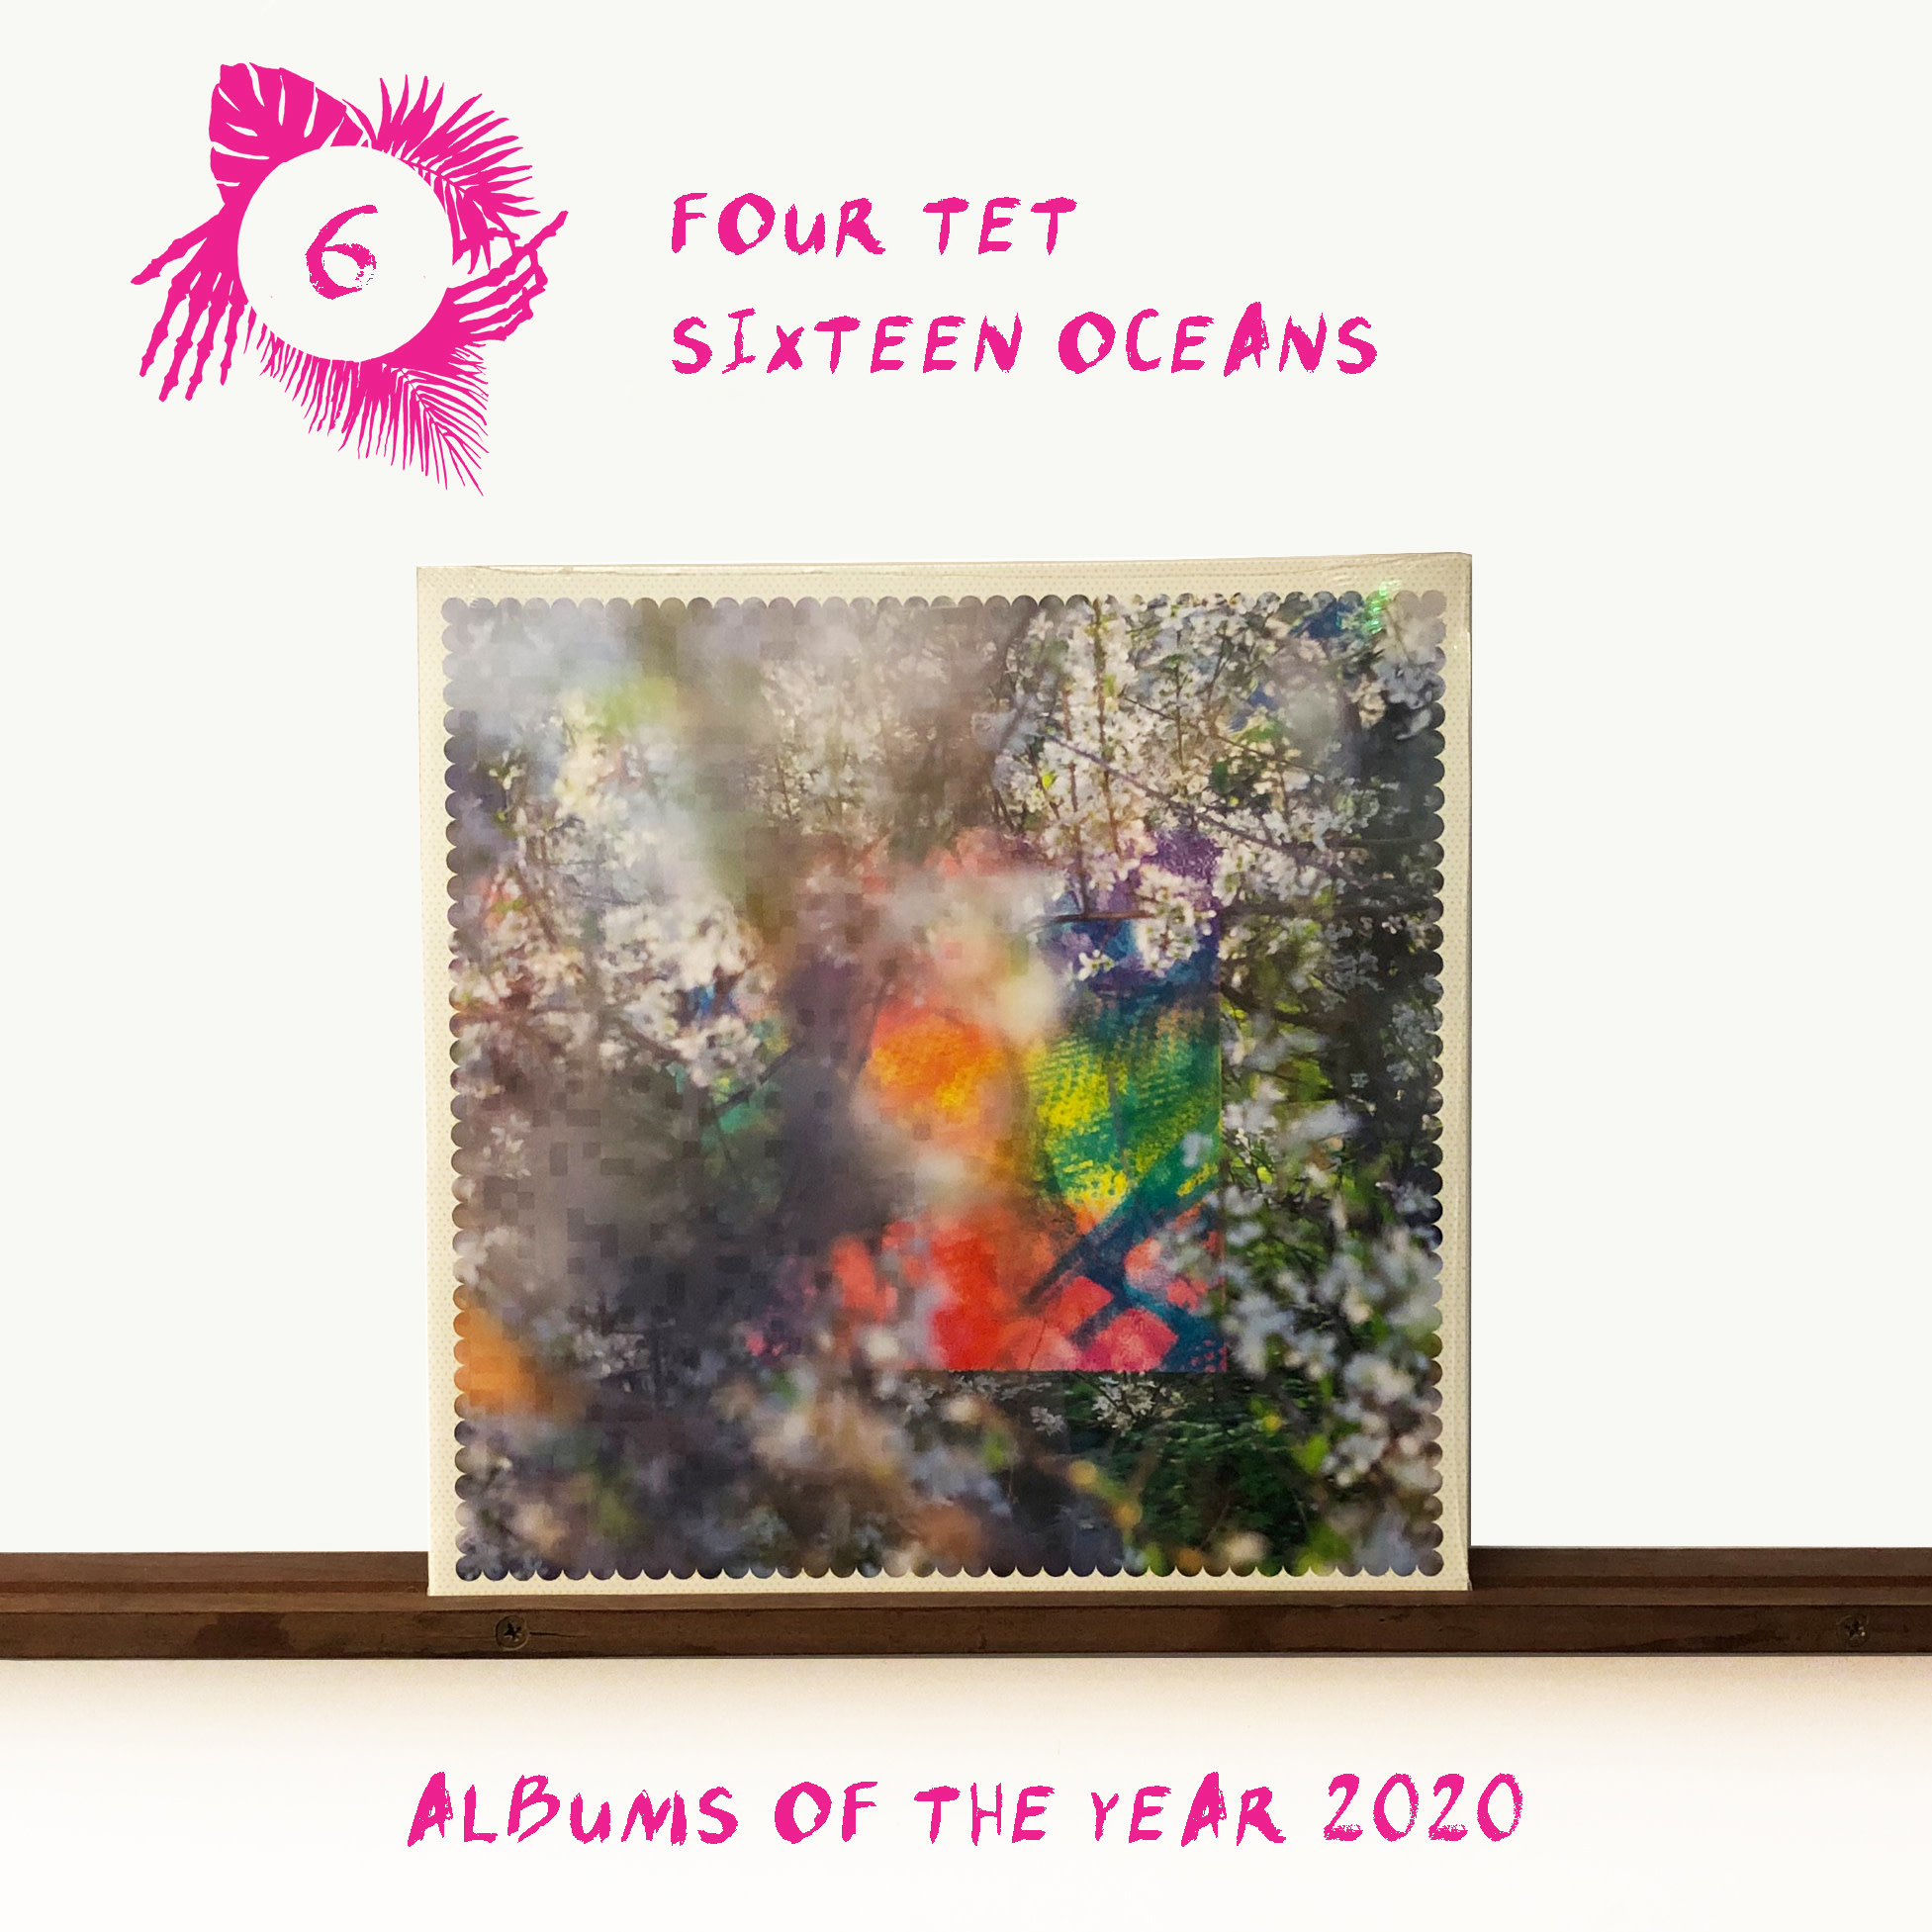 Text Four Tet - Sixteen Oceans